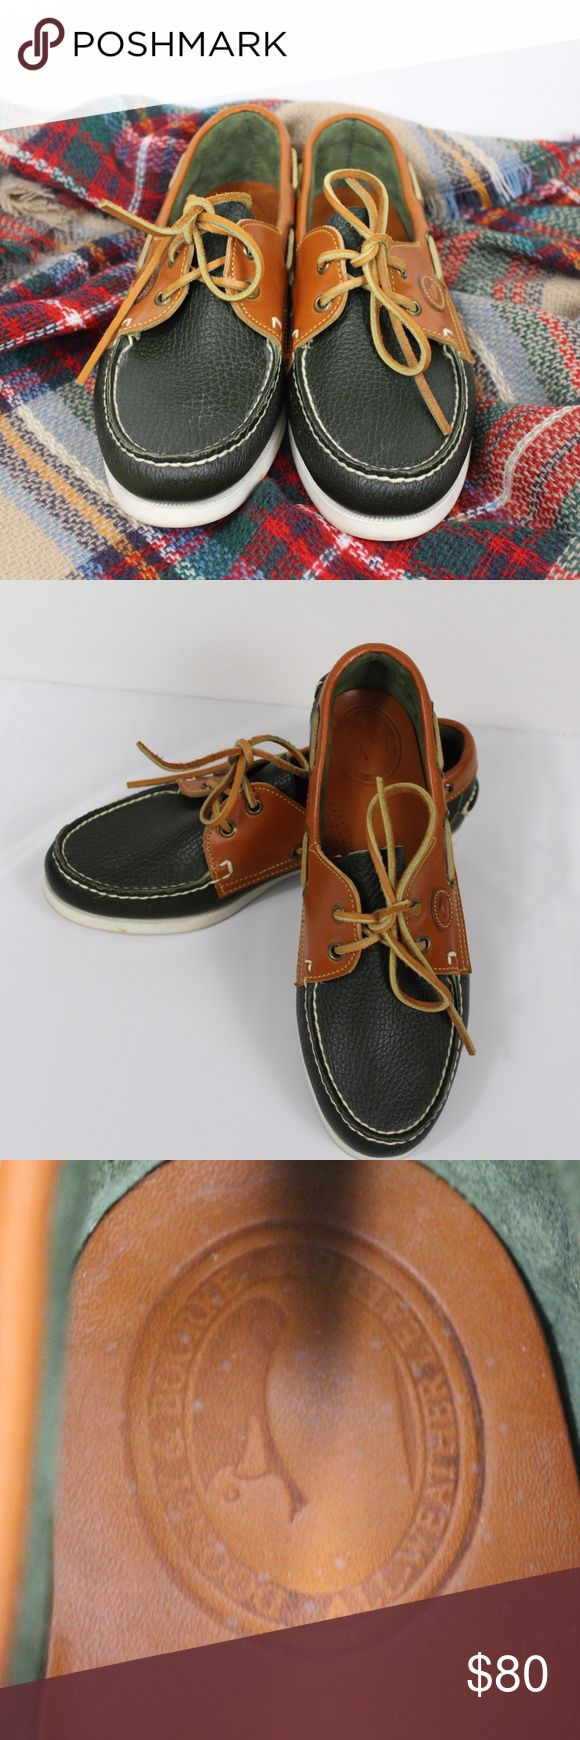 Dooney & Bourke Green Leather Boat Shoes Sz 8.5M Dooney & Bourke Green Leather Boat Shoes Sz 8.5M. Shoes are in very good condition.  Light soil around bottoms. Dooney & Bourke Shoes Flats & Loafers